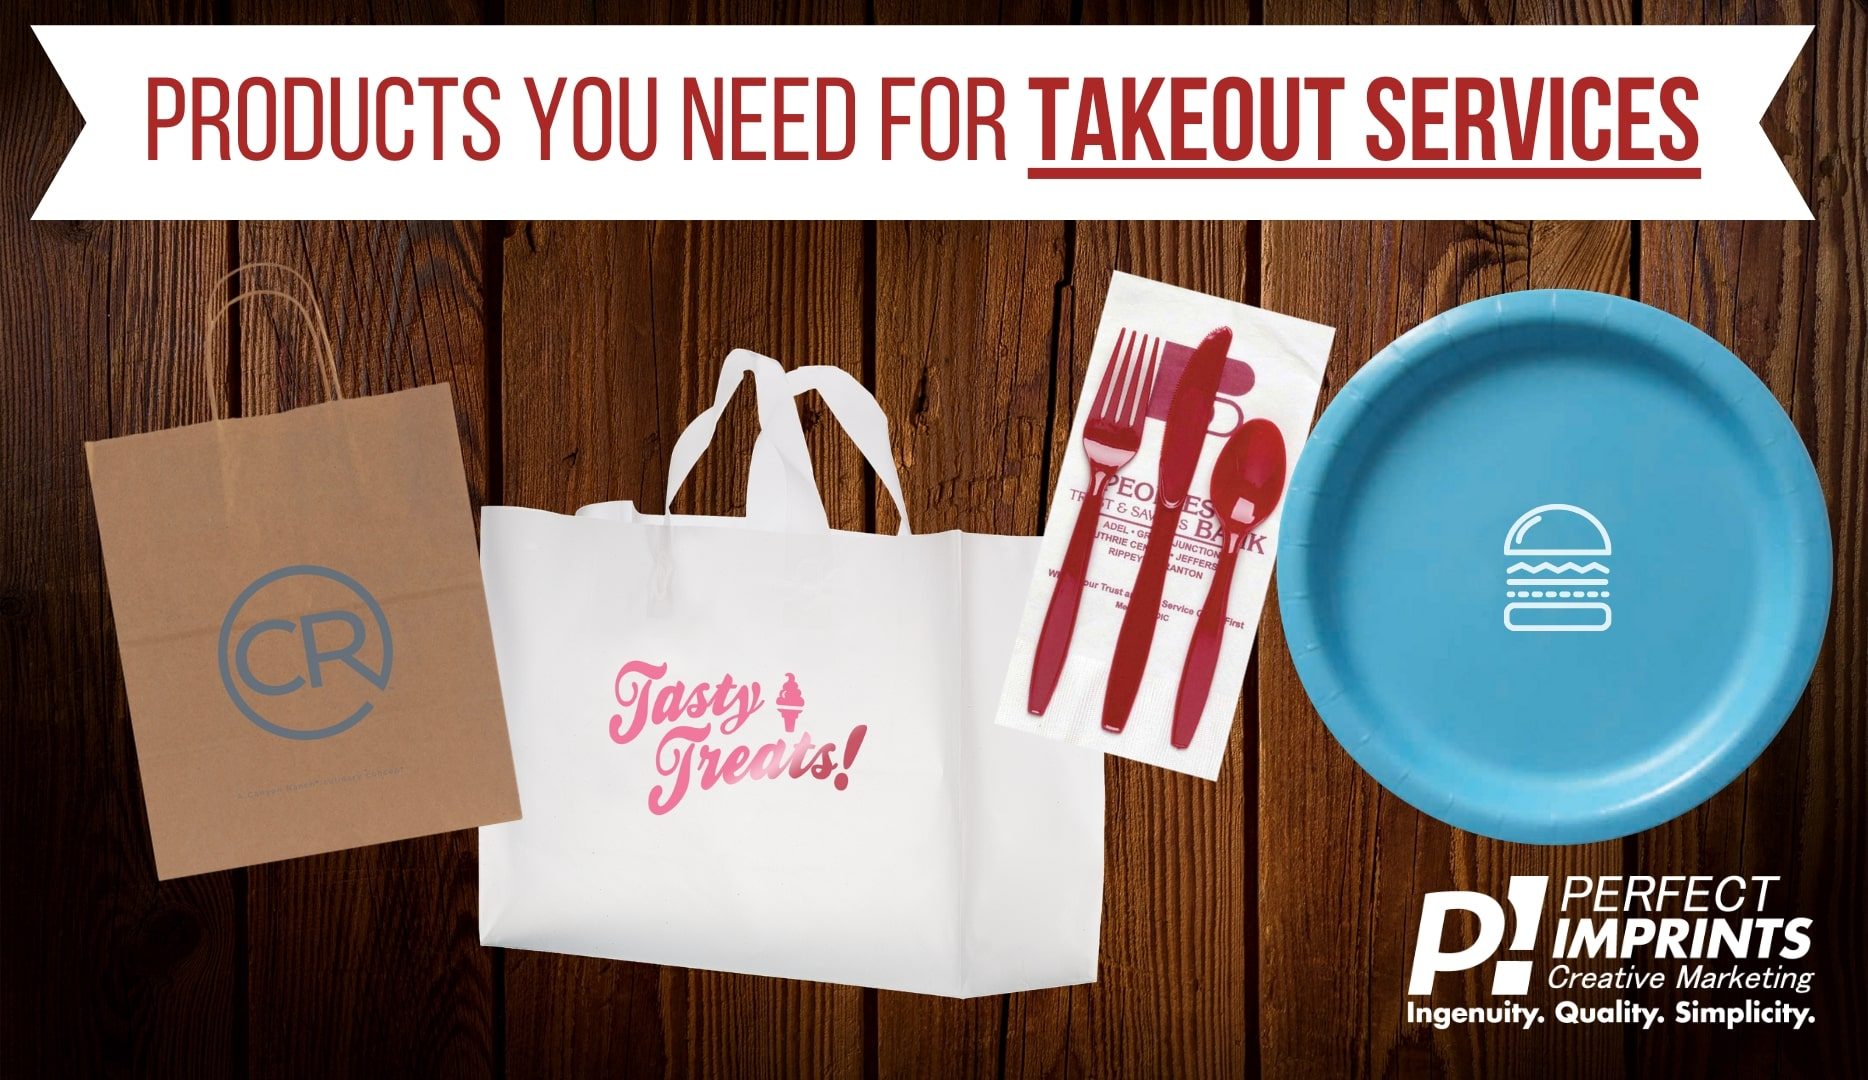 Getting Your Restaurant Ready for Takeout Services